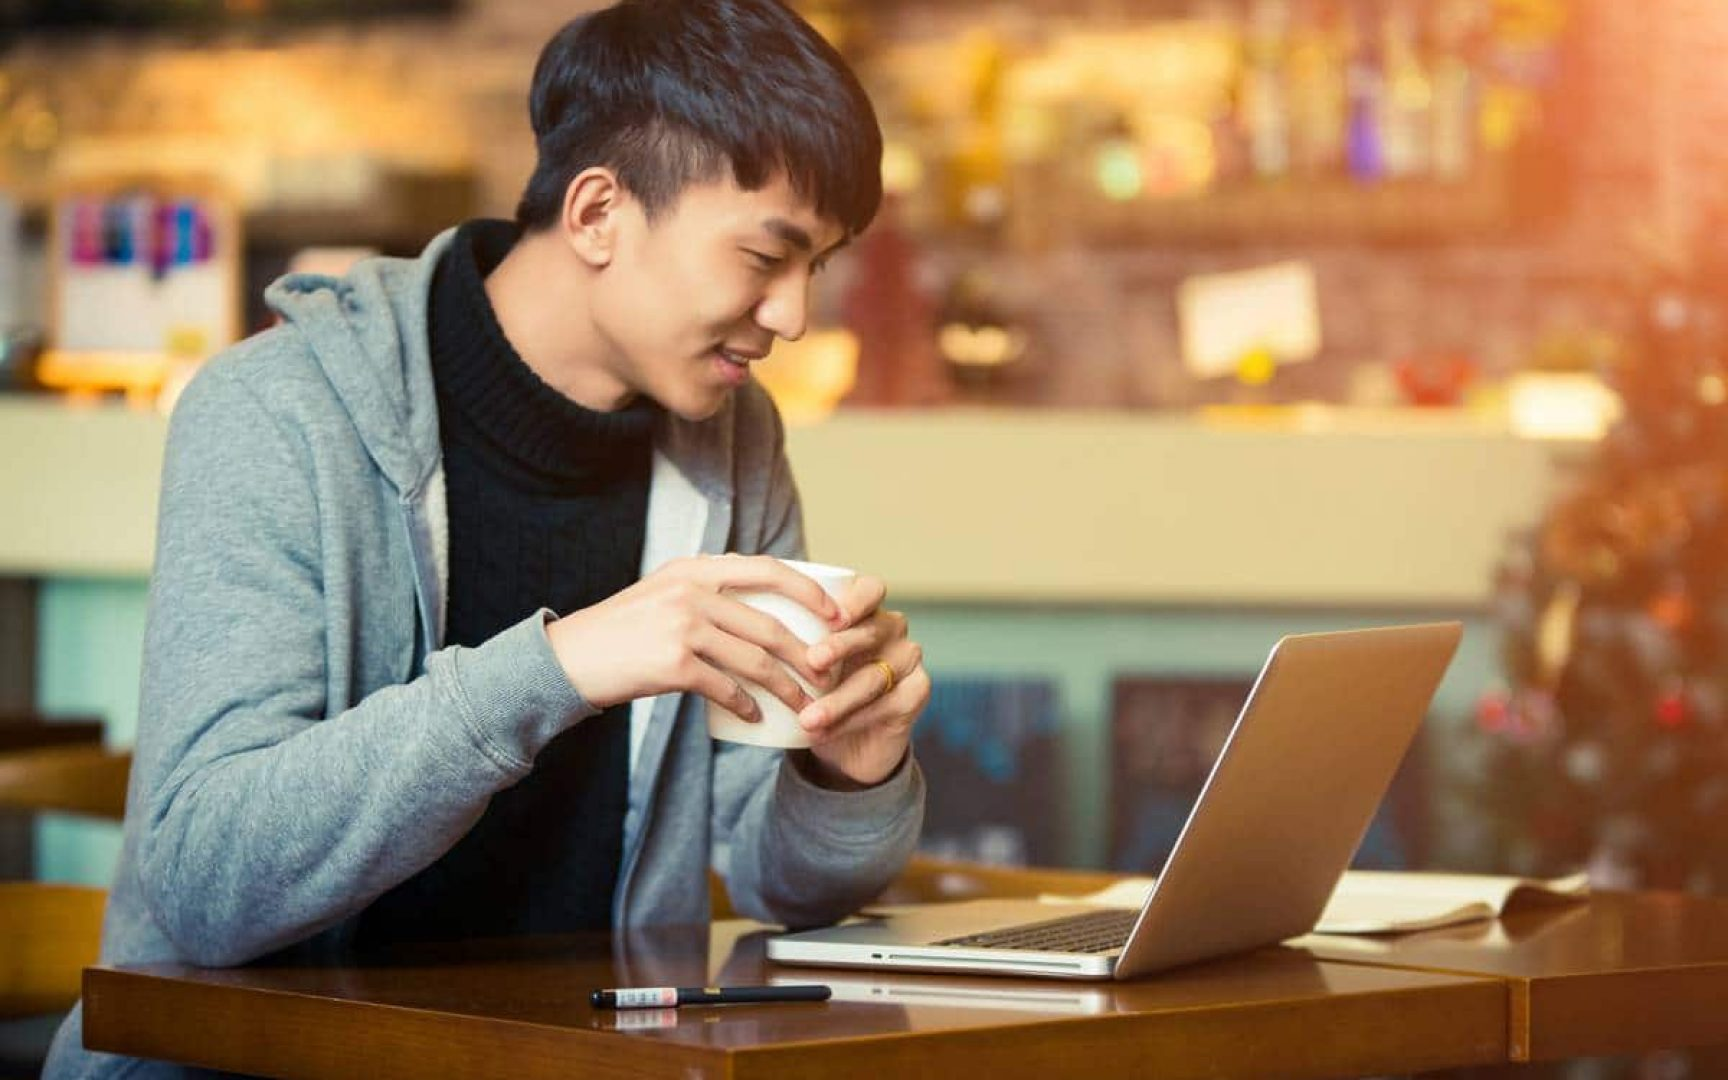 Young man looking at a computer drinking coffee